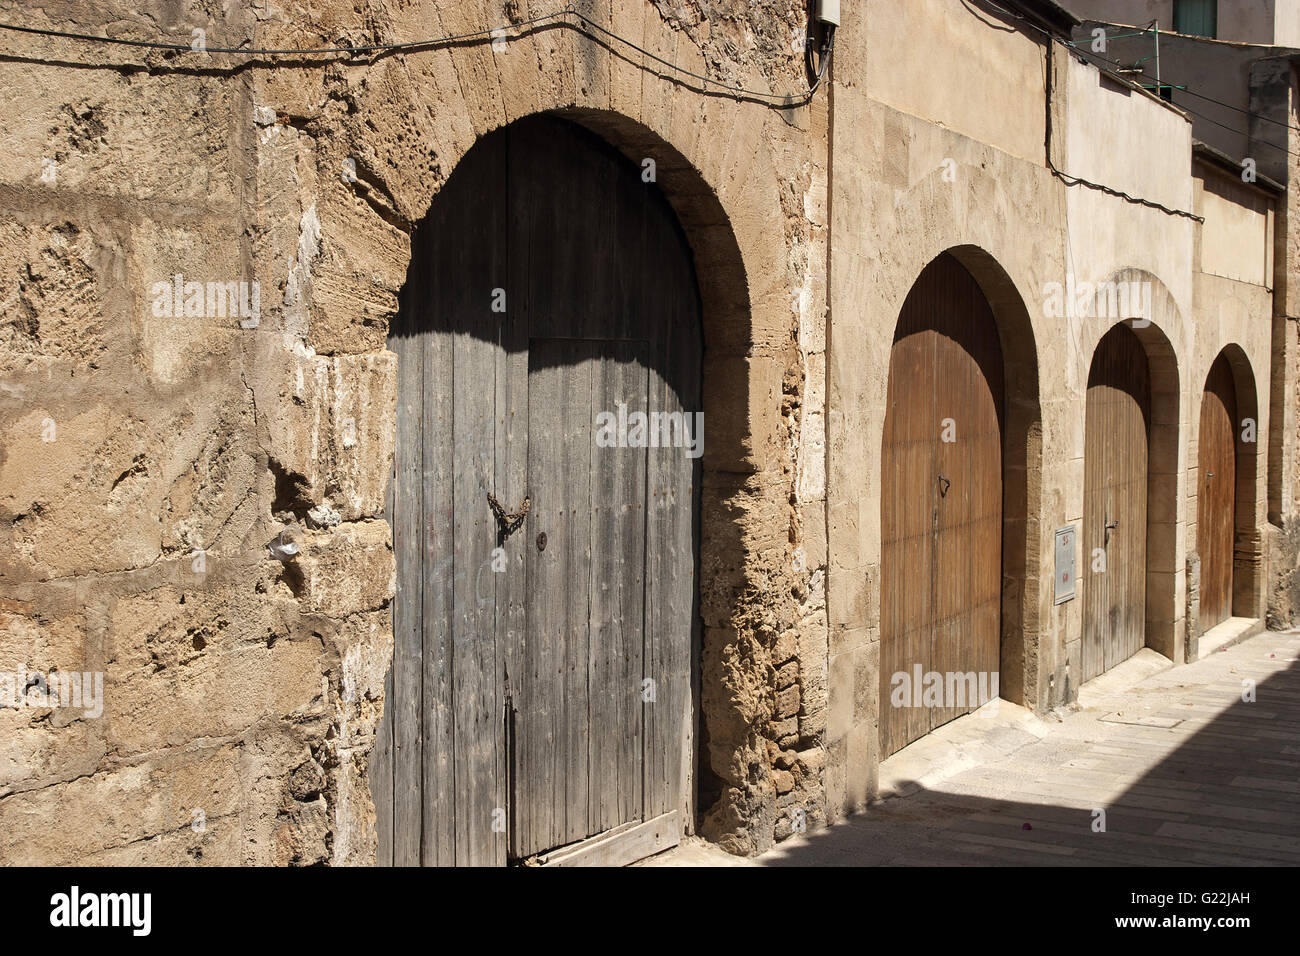 a beautiful wide angle photo of wooden old arched doors in the town of Alcudia, Palma de Mallorca, Spain, seaside, - Stock Image